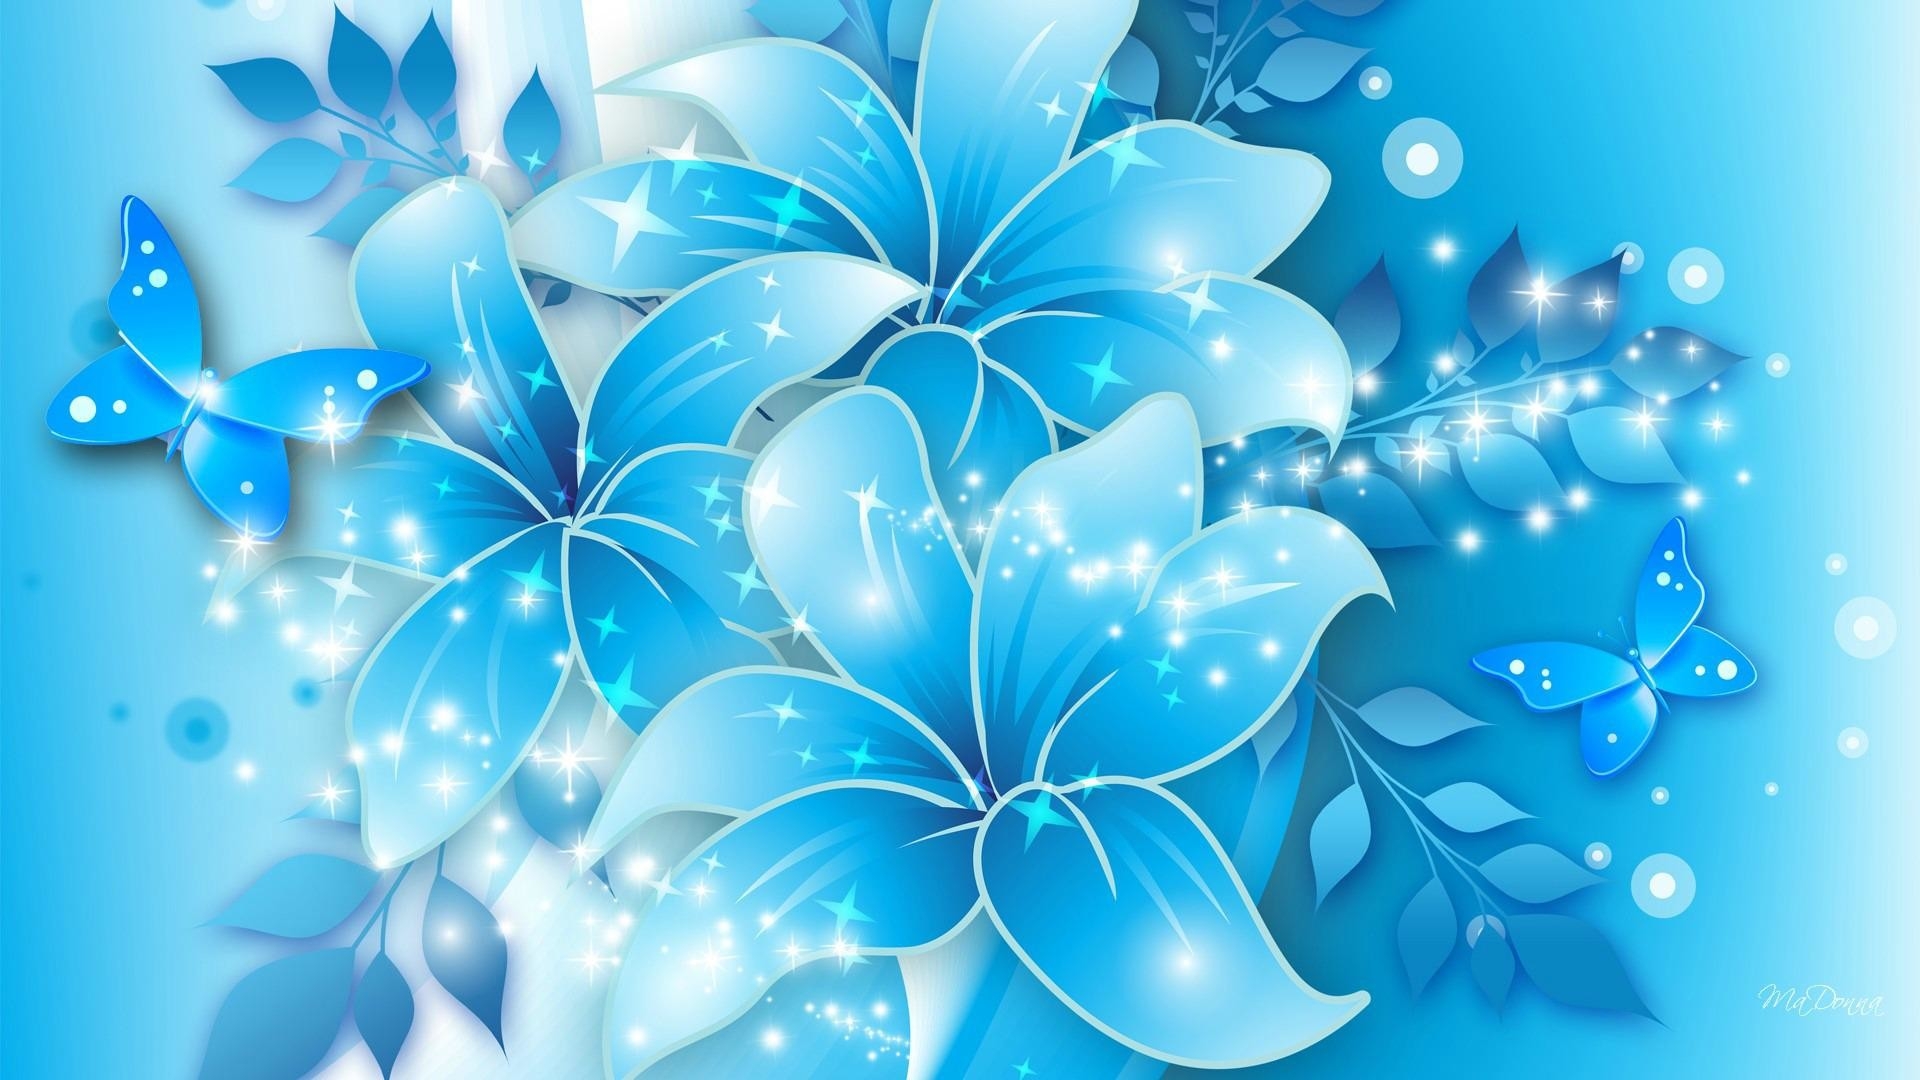 Res: 1920x1080, Baby Blue Wallpapers - Wallpaper Cave